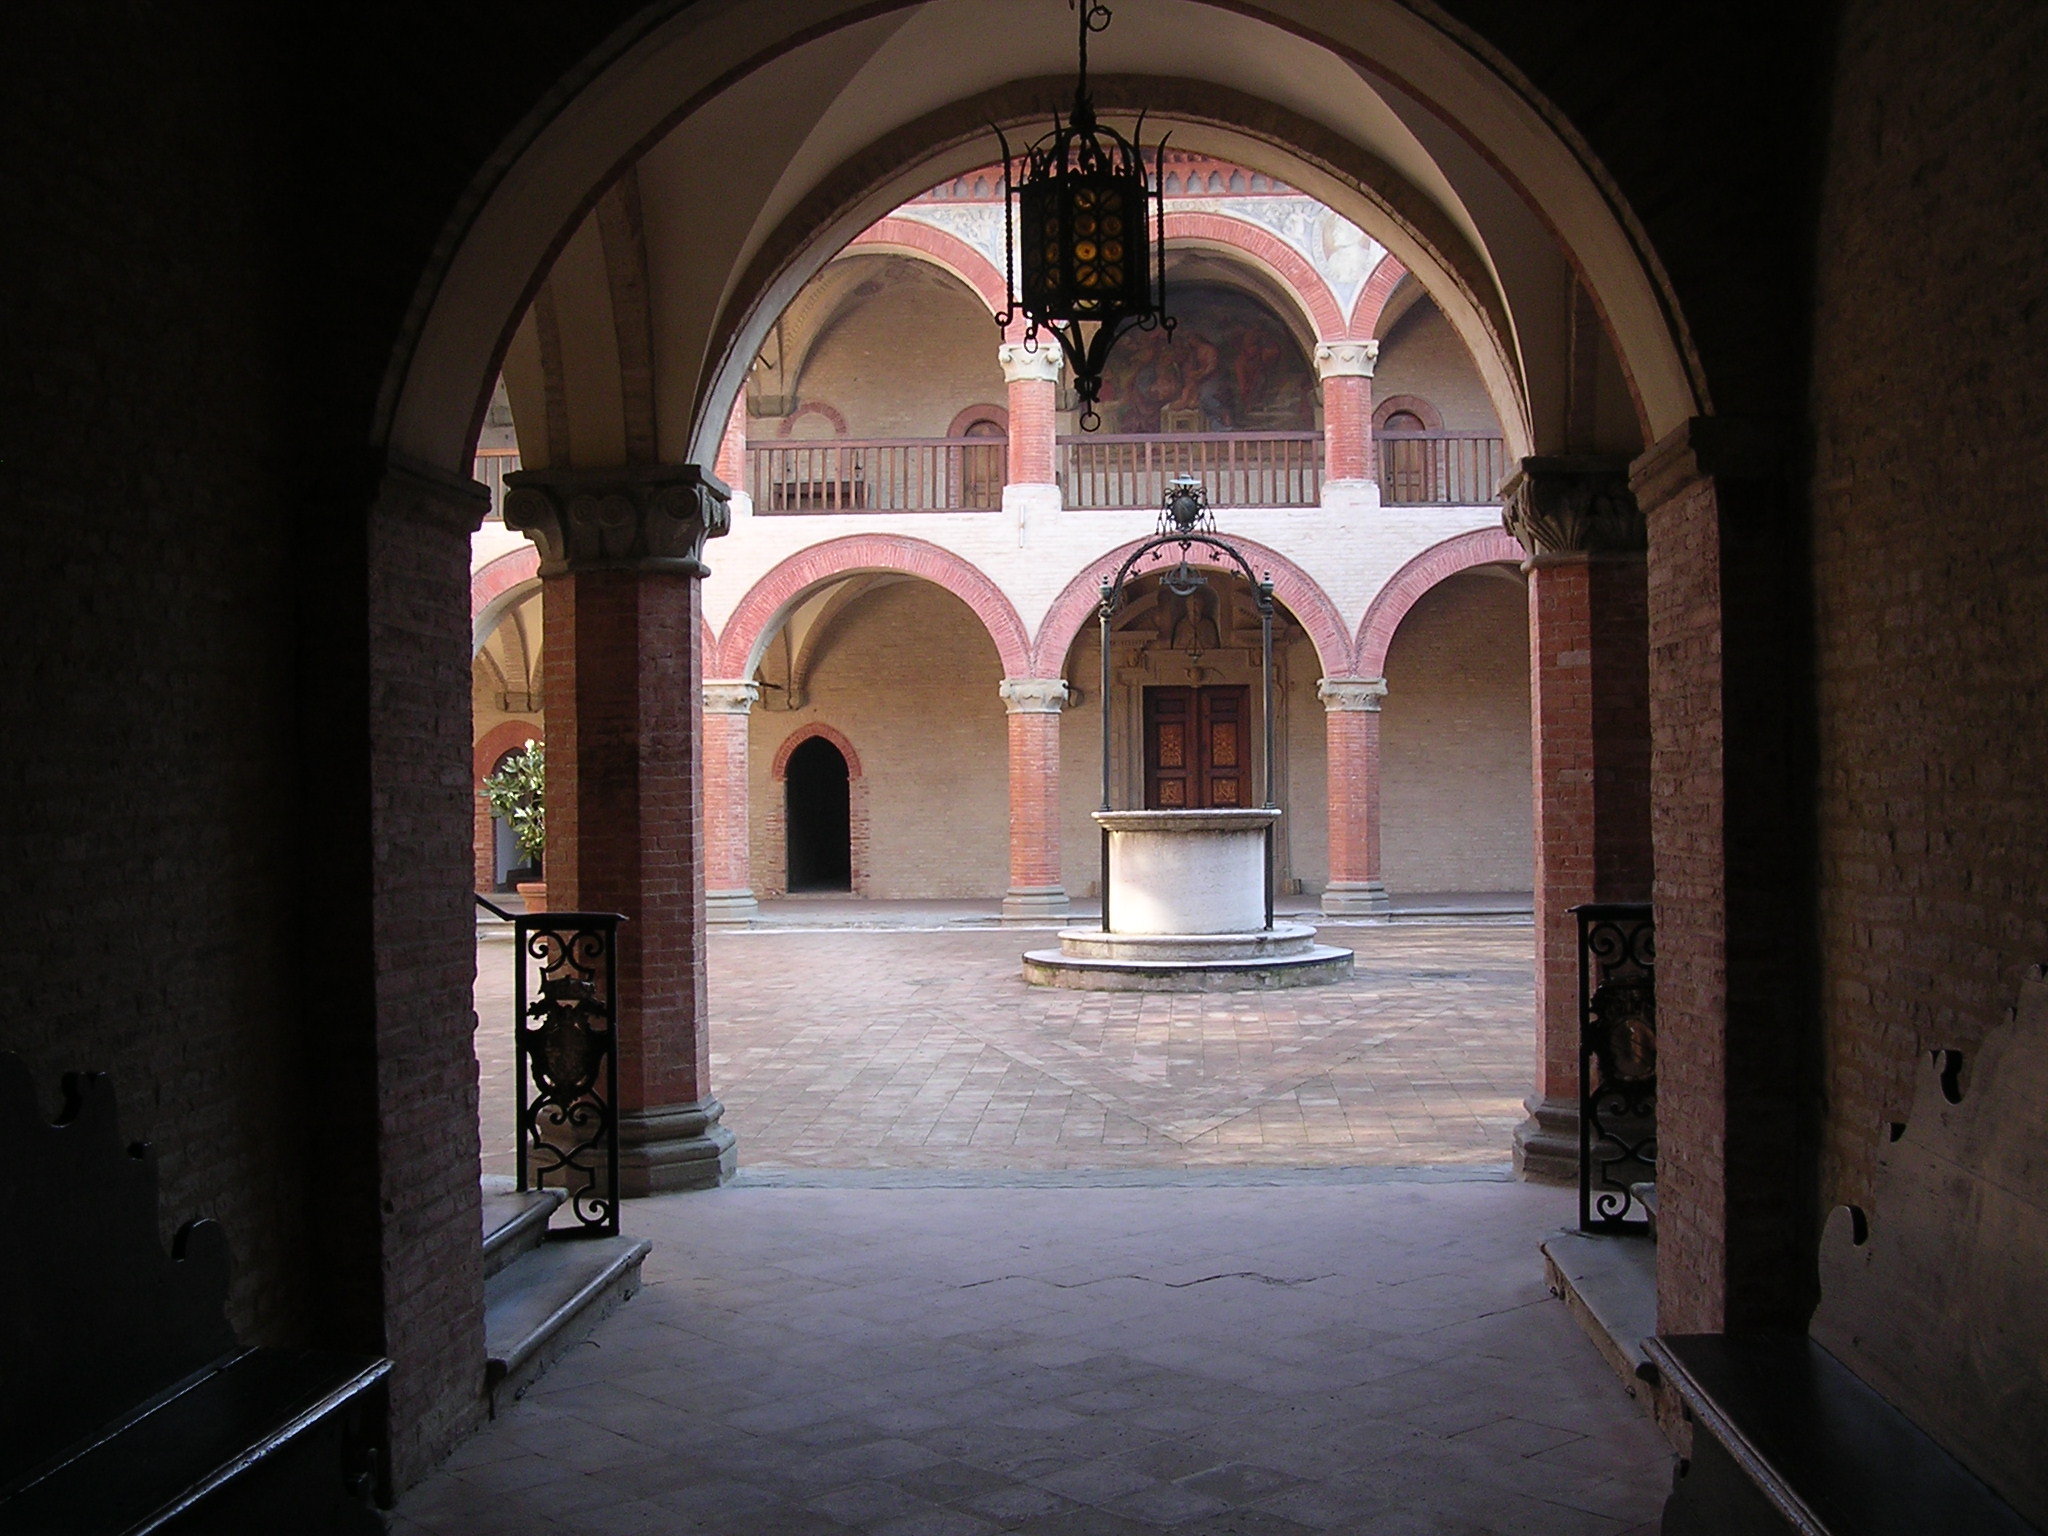 Interior view of the Porticum and Loggia of its oldest College the Royal Spanish College